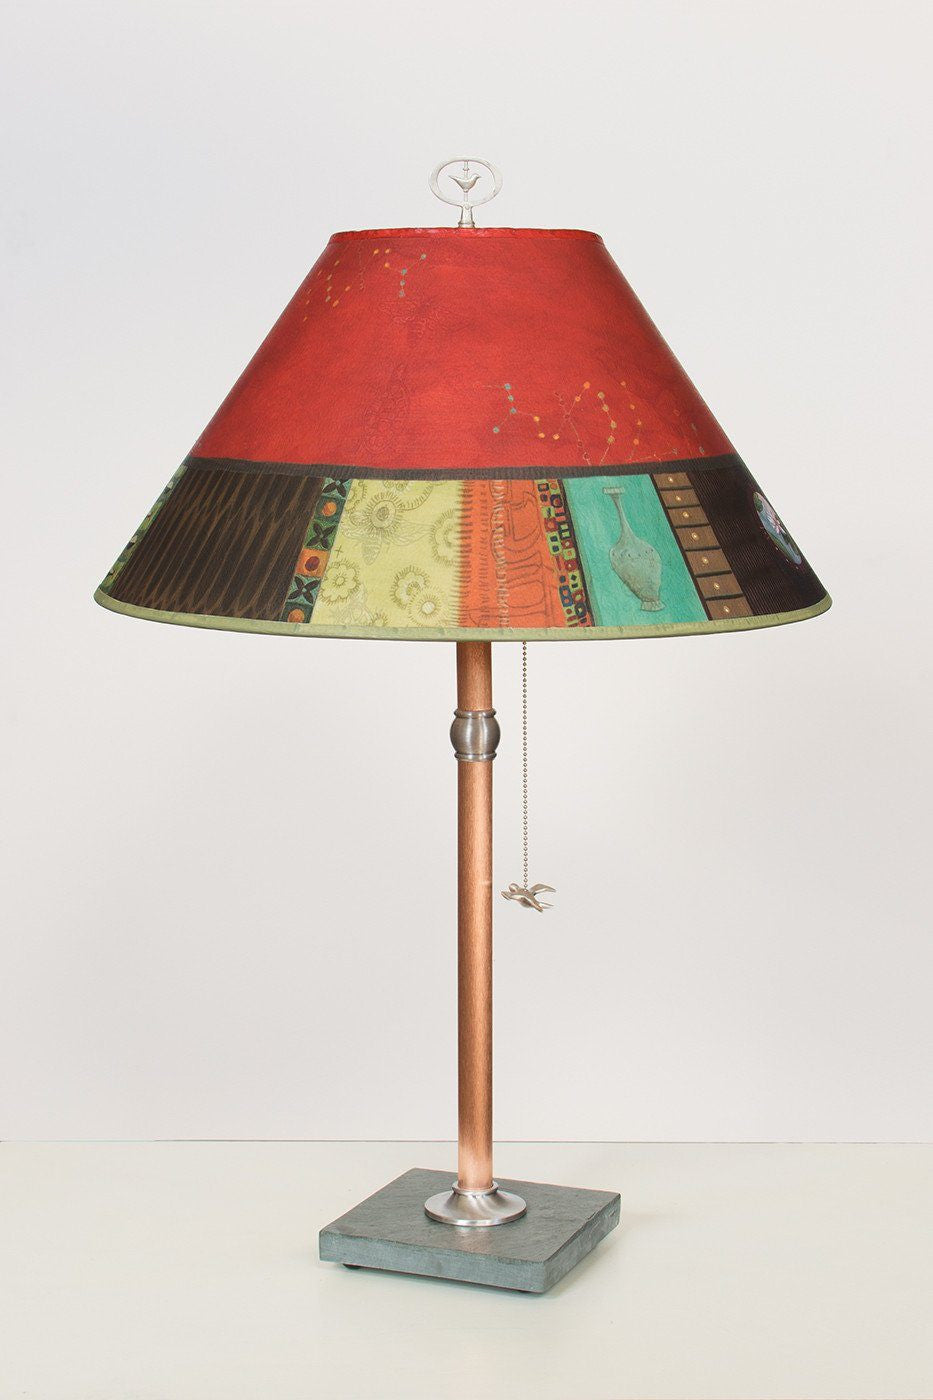 Copper Table Lamp on Vermont Slate with Large Conical Shade in Red Match